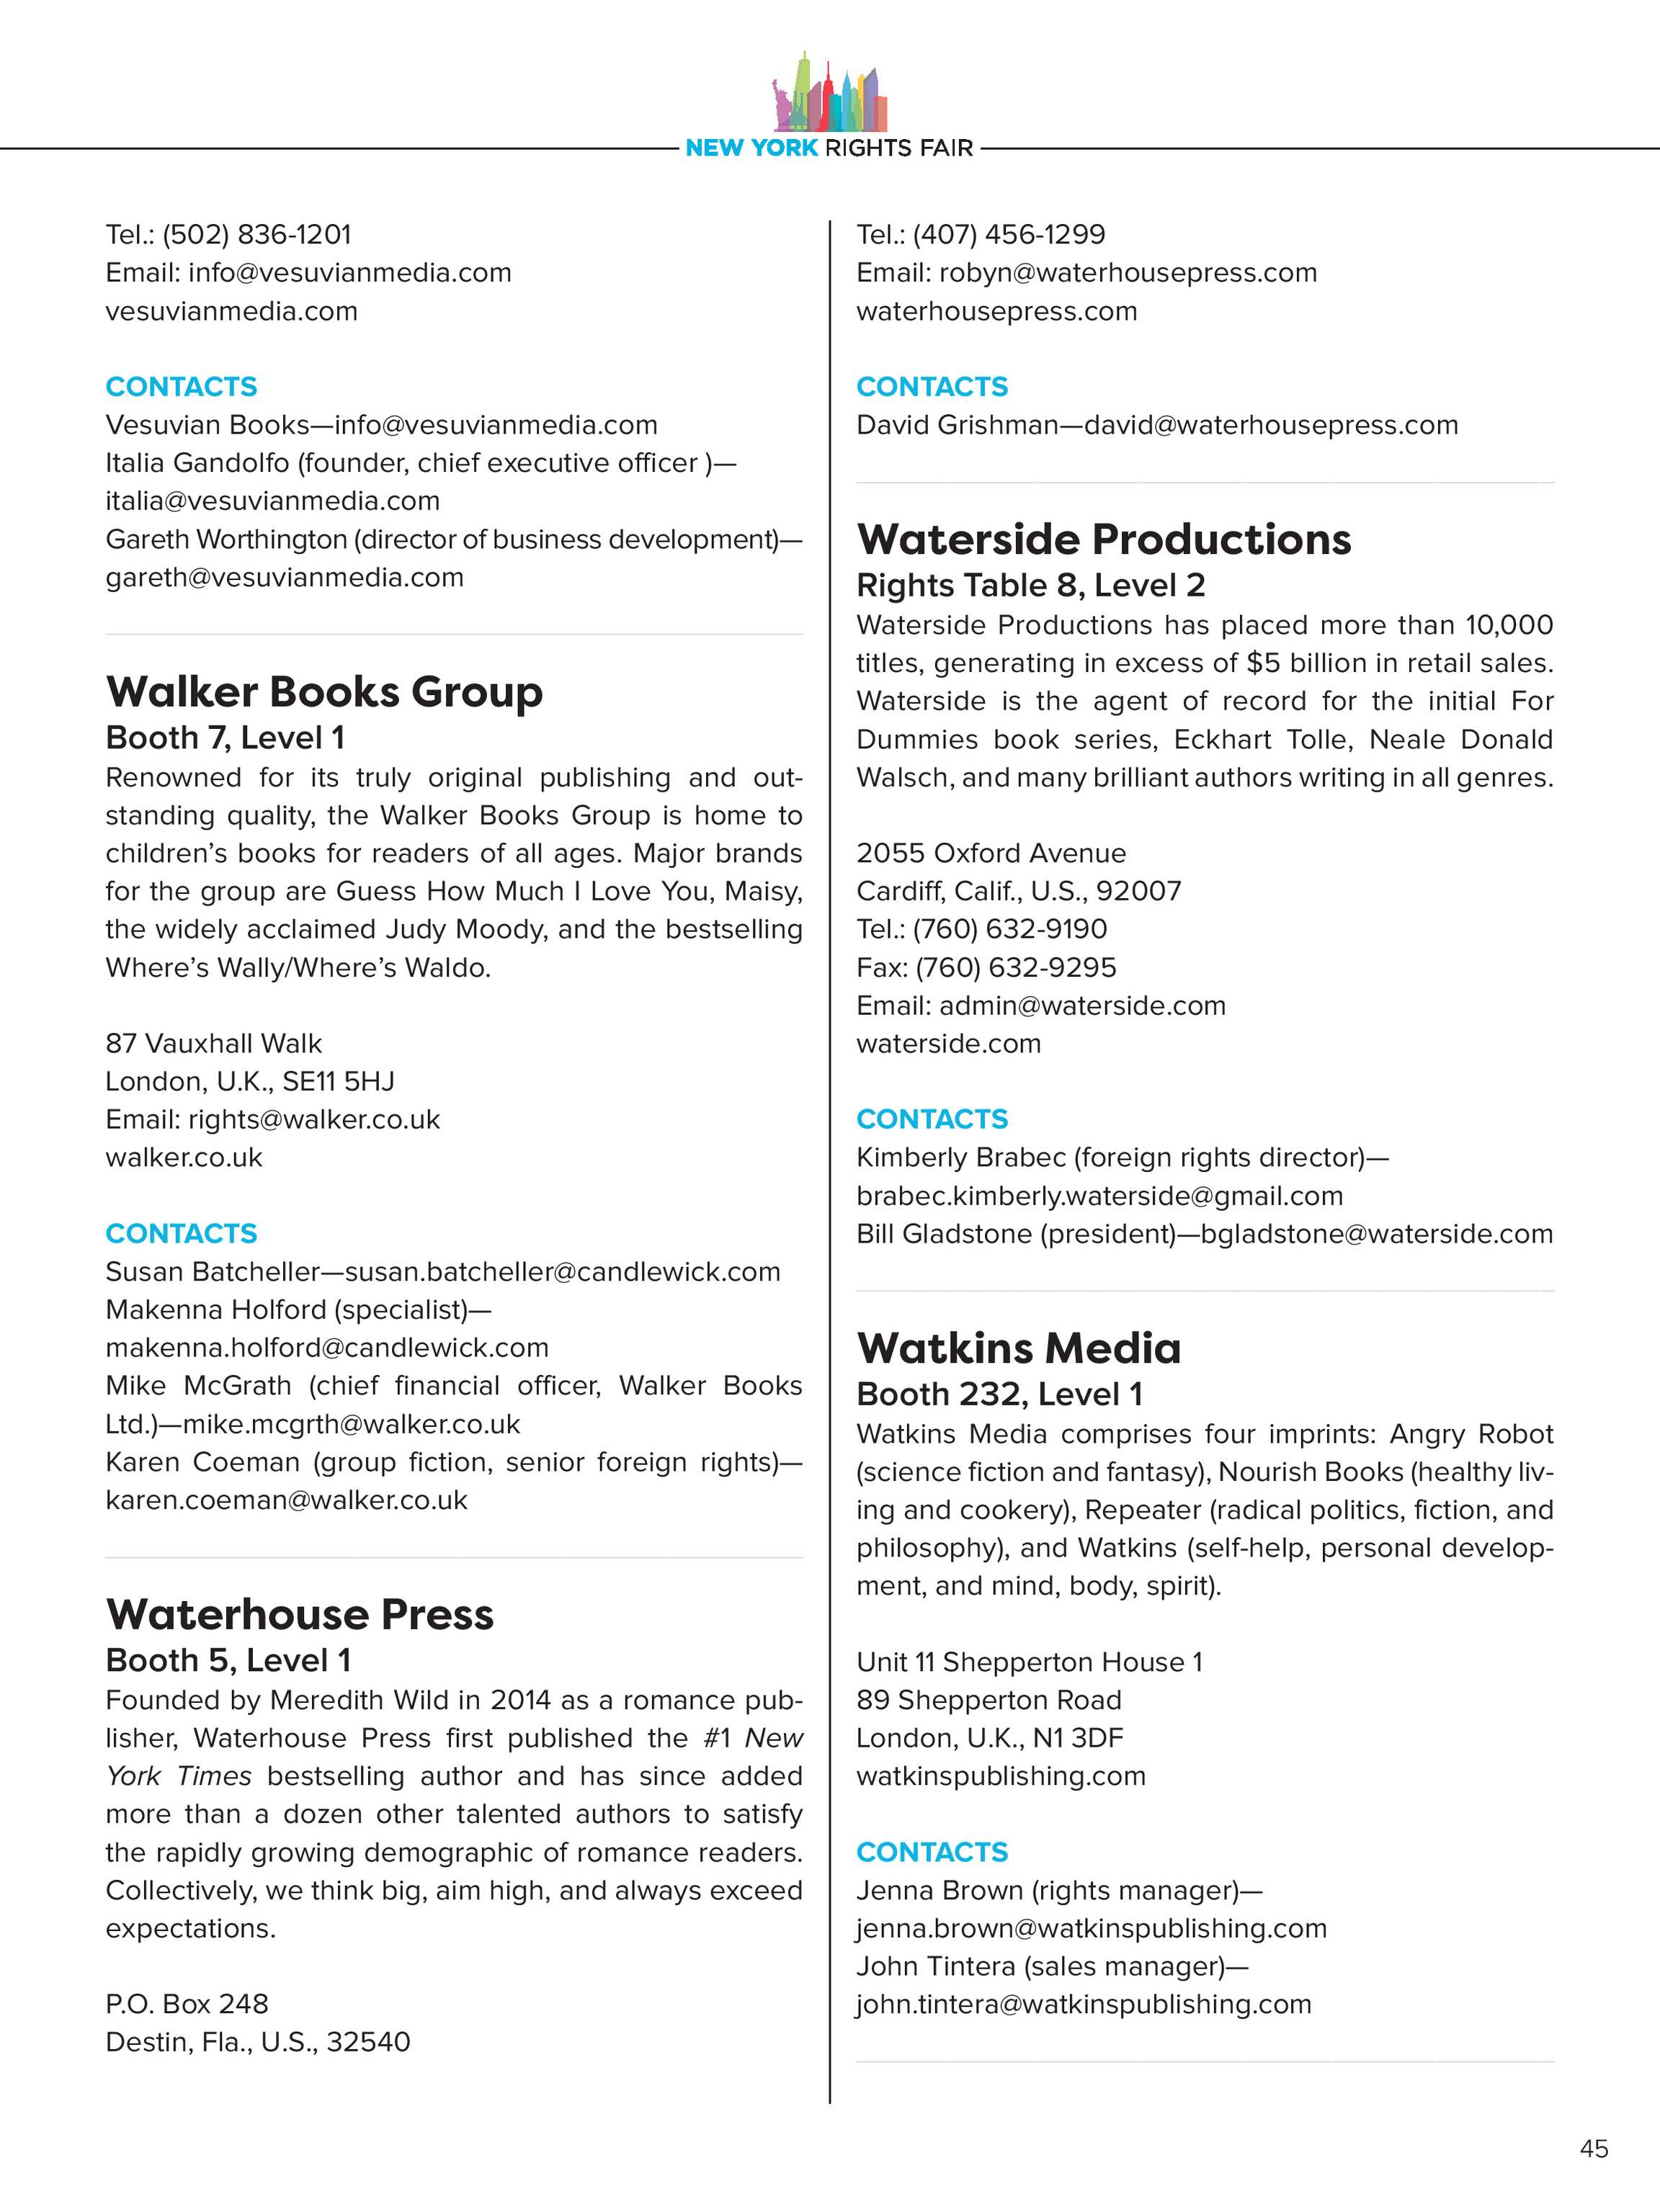 Publishers Weekly - NYRF Directory - page 45